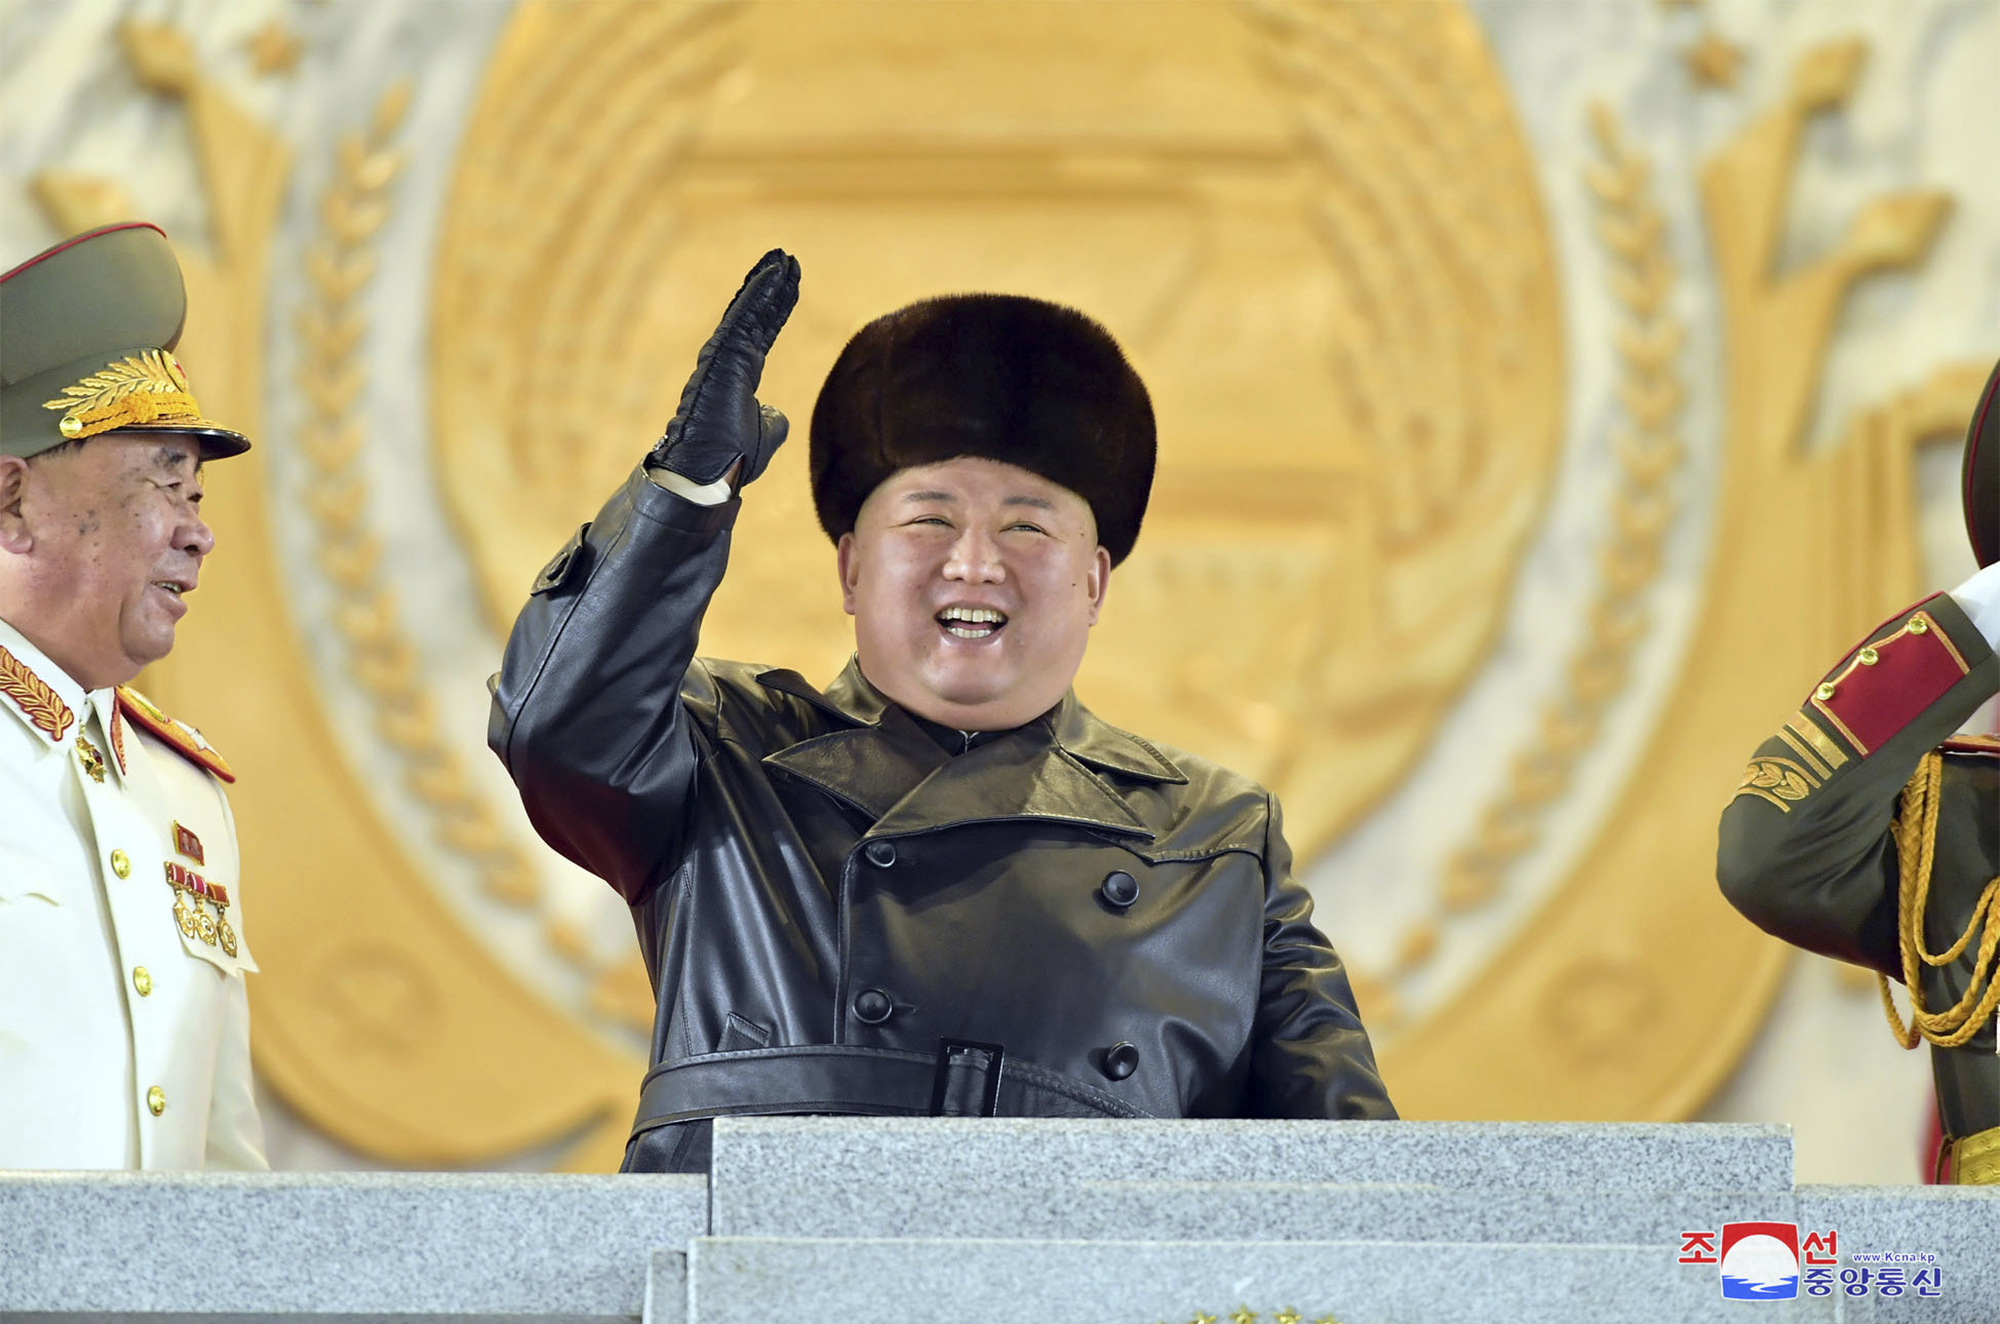 In this photo provided by the North Korean government, North Korean leader Kim Jong Un waves while attending a military parade, marking the ruling party congress, at Kim Il Sung Square in Pyongyang, North Korea Thursday, Jan. 14, 2021.